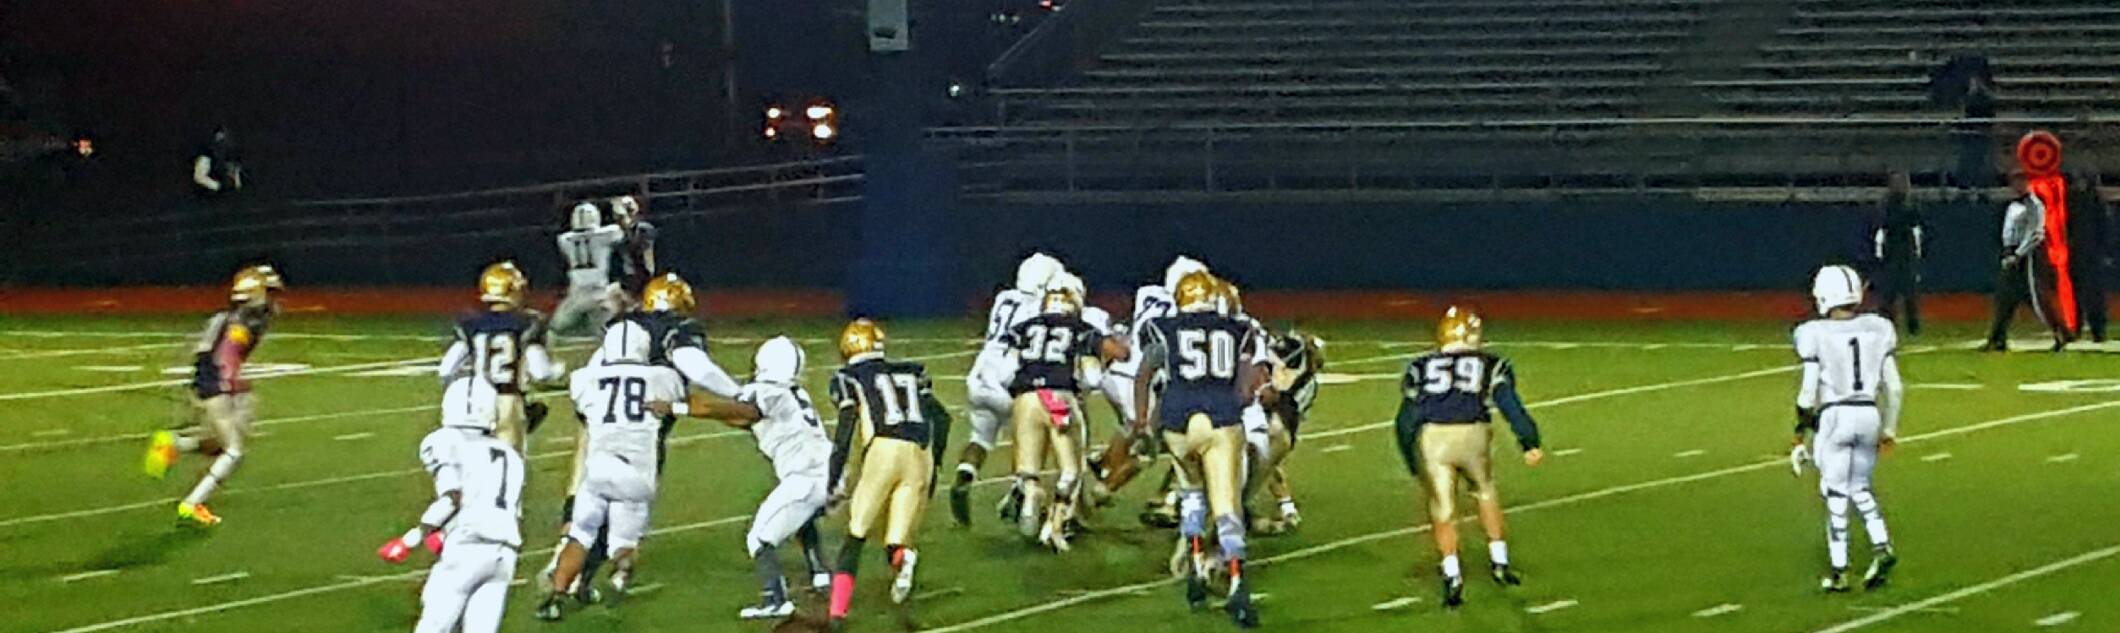 Malden High School defense going after the ball carrier. Photo by Tenzin Dorjee.